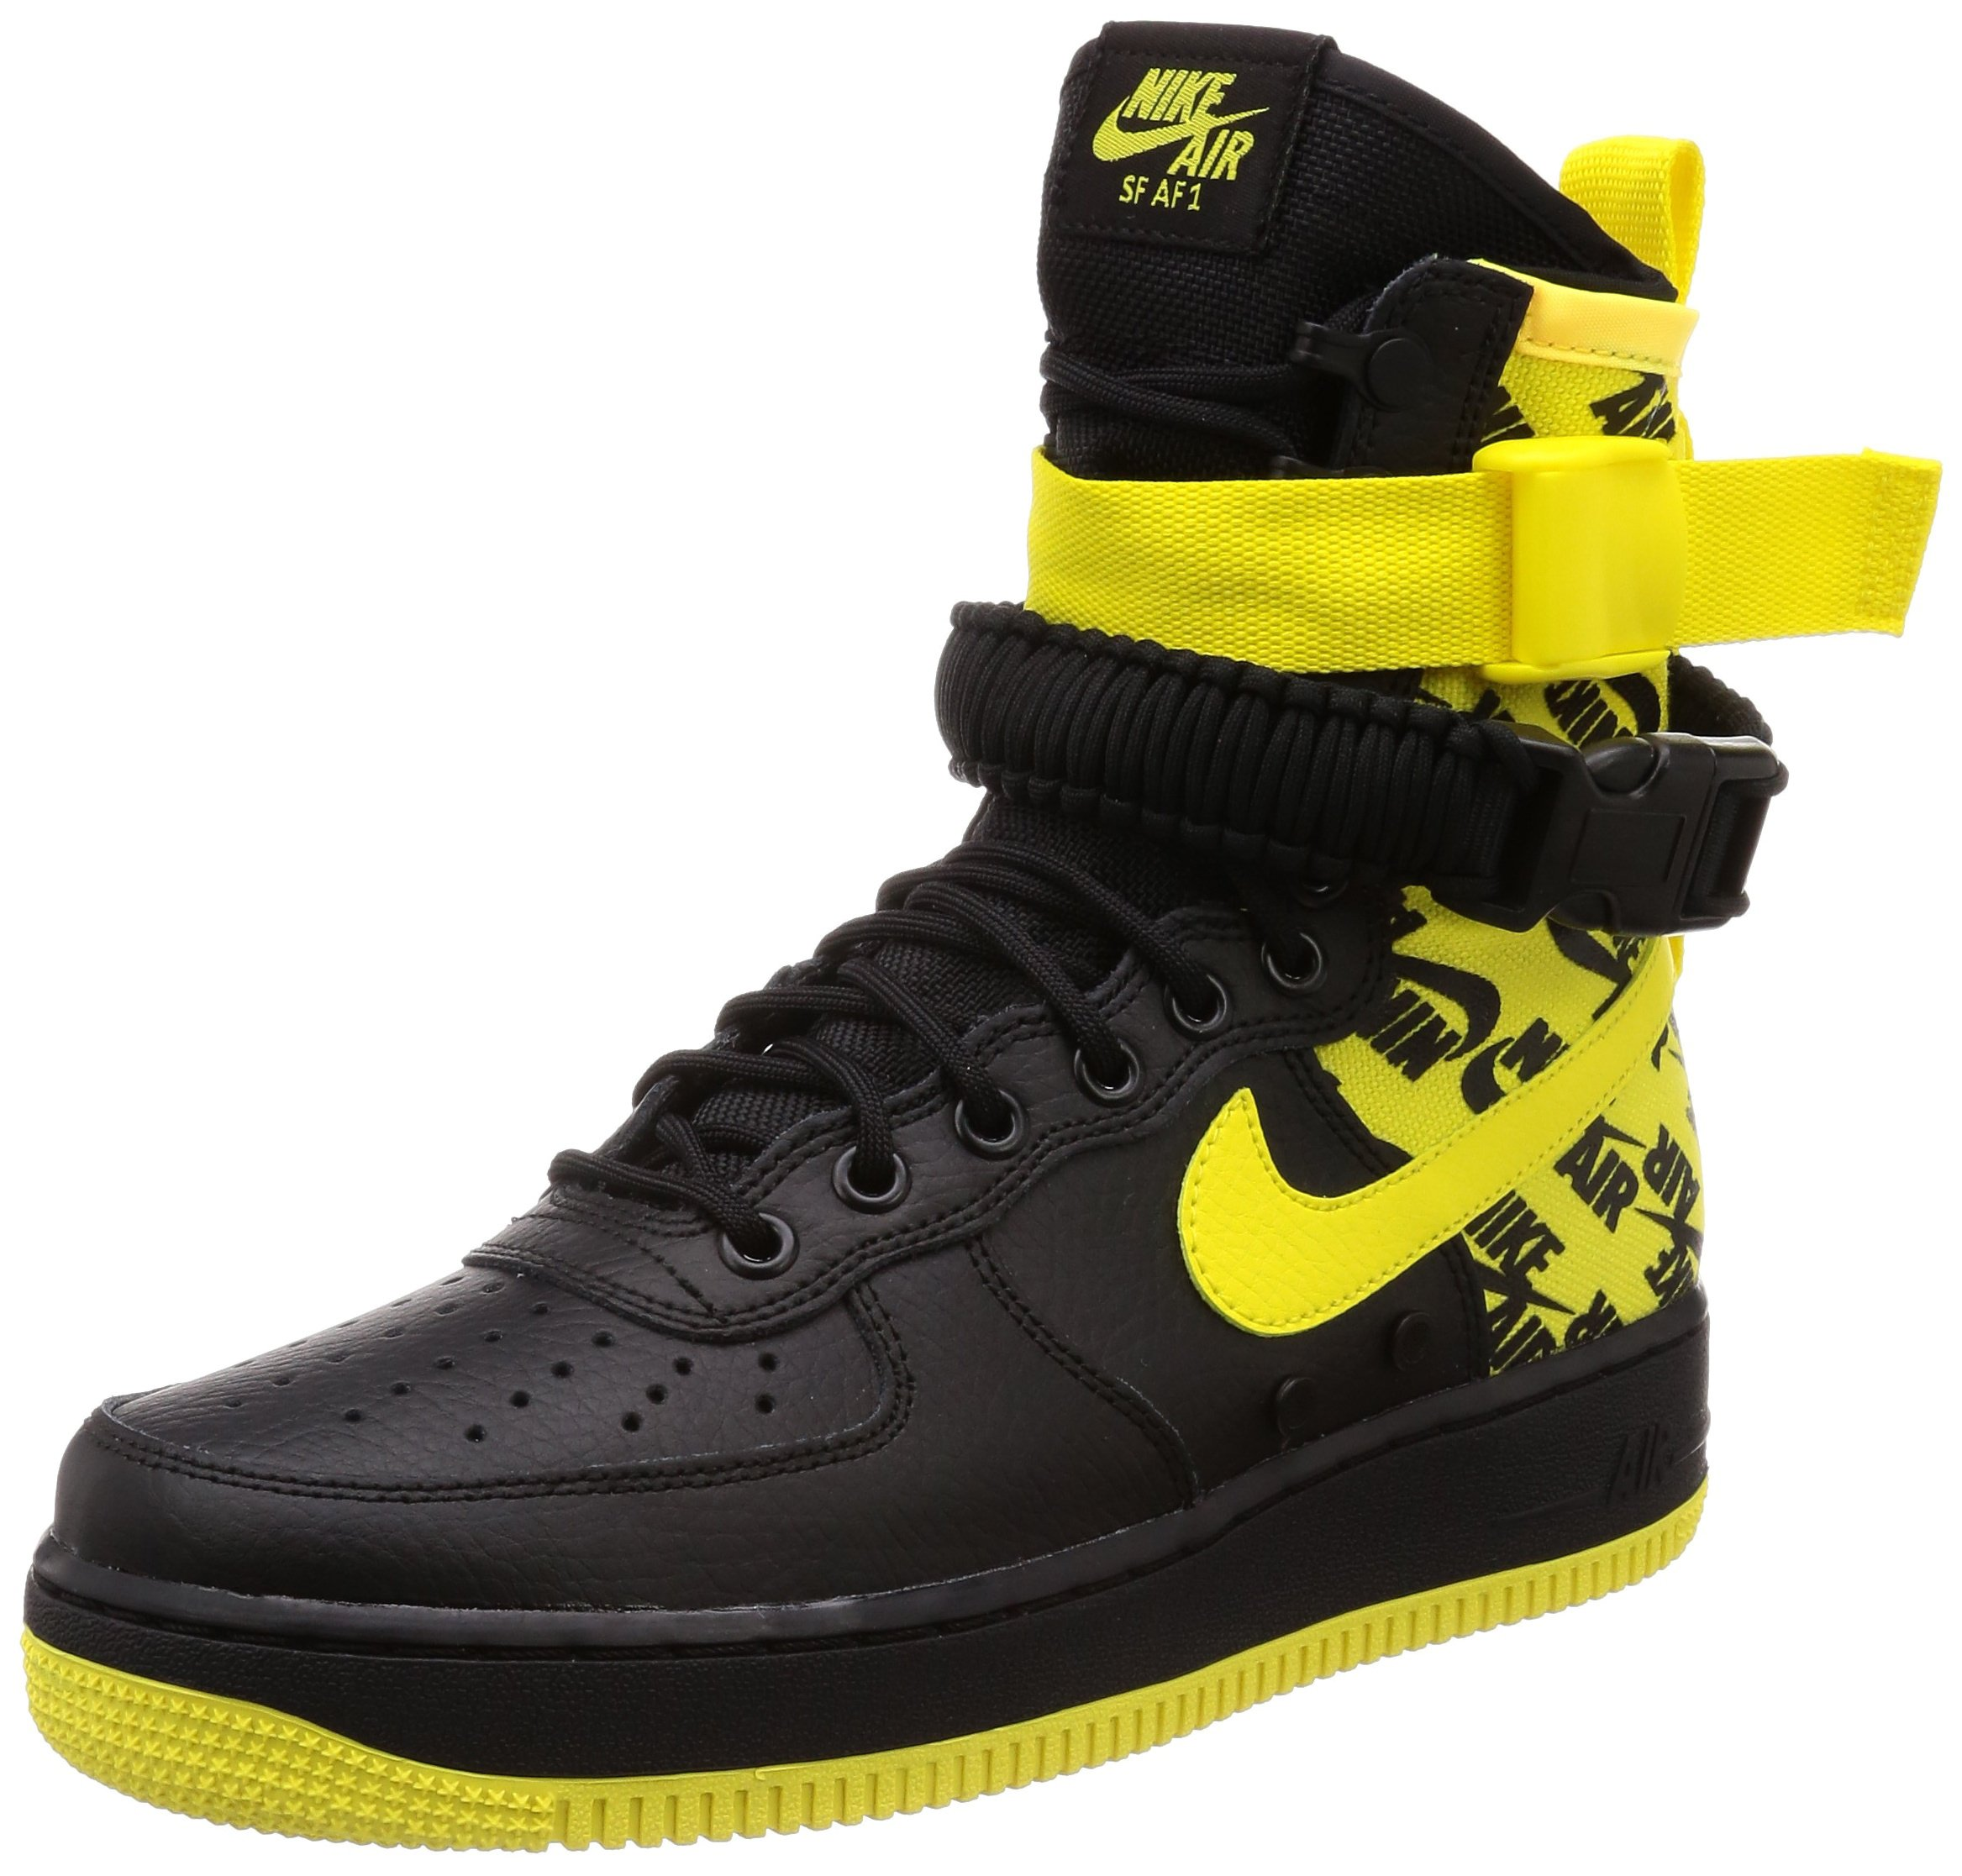 on sale e5dbc 11eb4 Galleon - Nike Men s SF AIR Force 1 Shoe Black Dynamic Yellow (8 D(M) US)